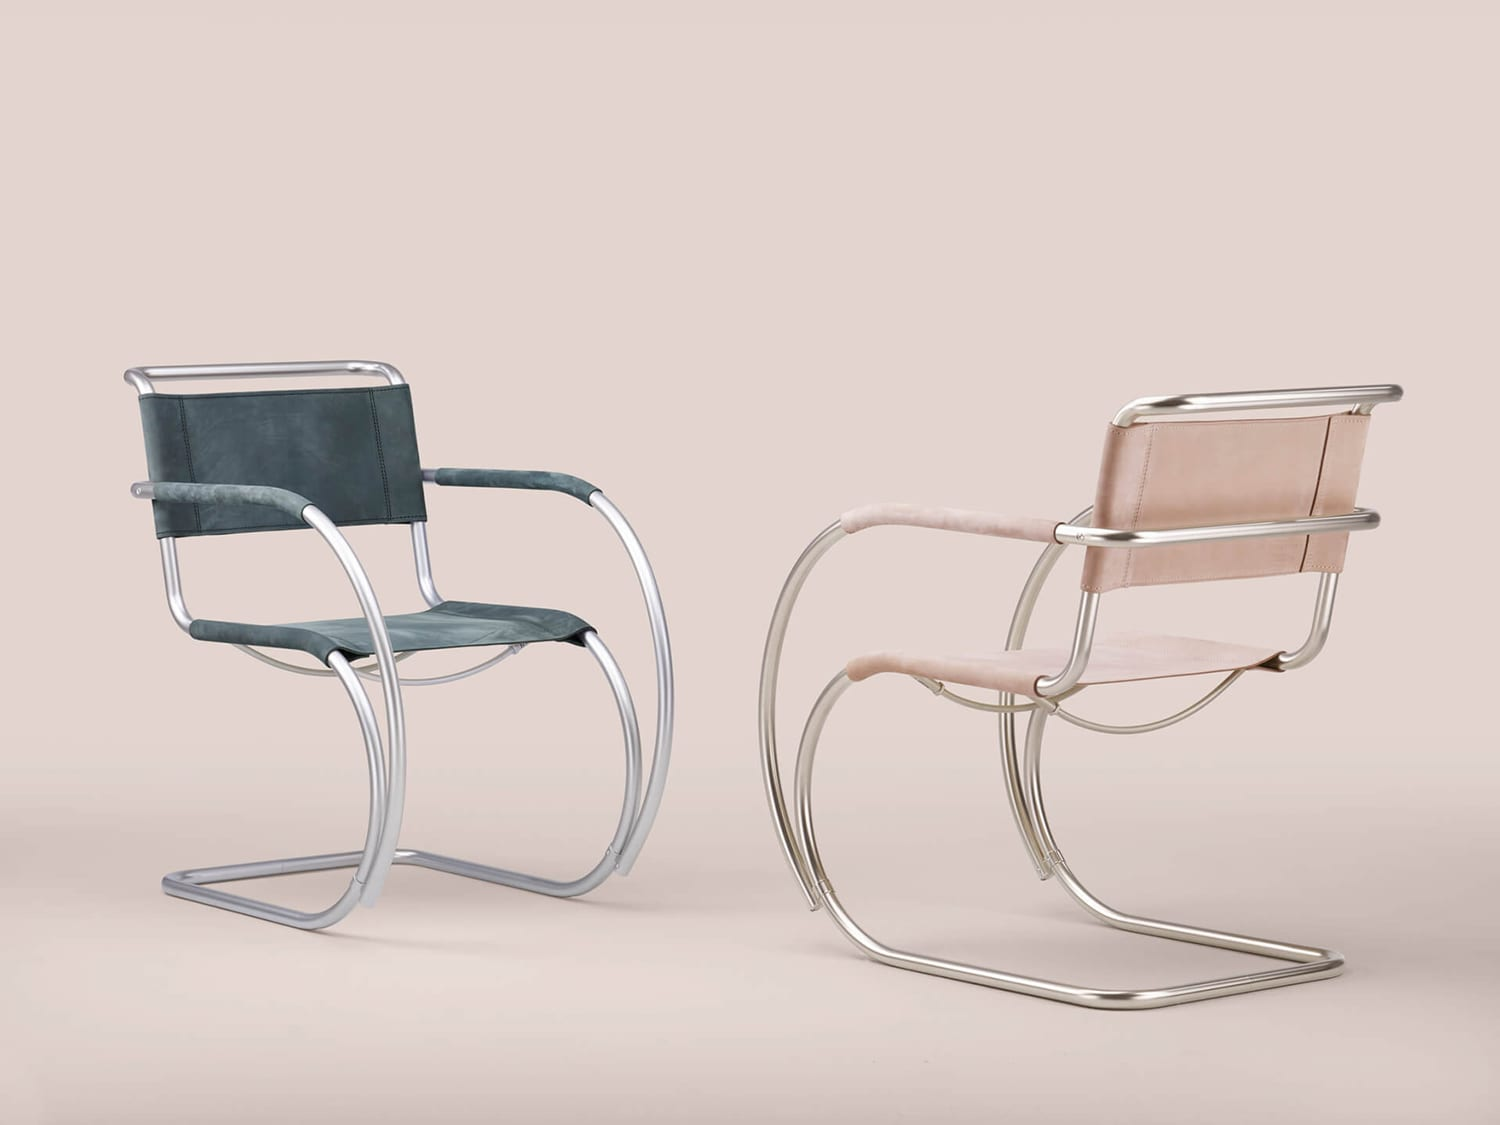 The S533 F Chair by Ludwig Mies van der Rohe (1927) reinterpreted by Studio Besau Marguerre (2018) for Thonet at Imm Cologne 2019   Yellowtrace